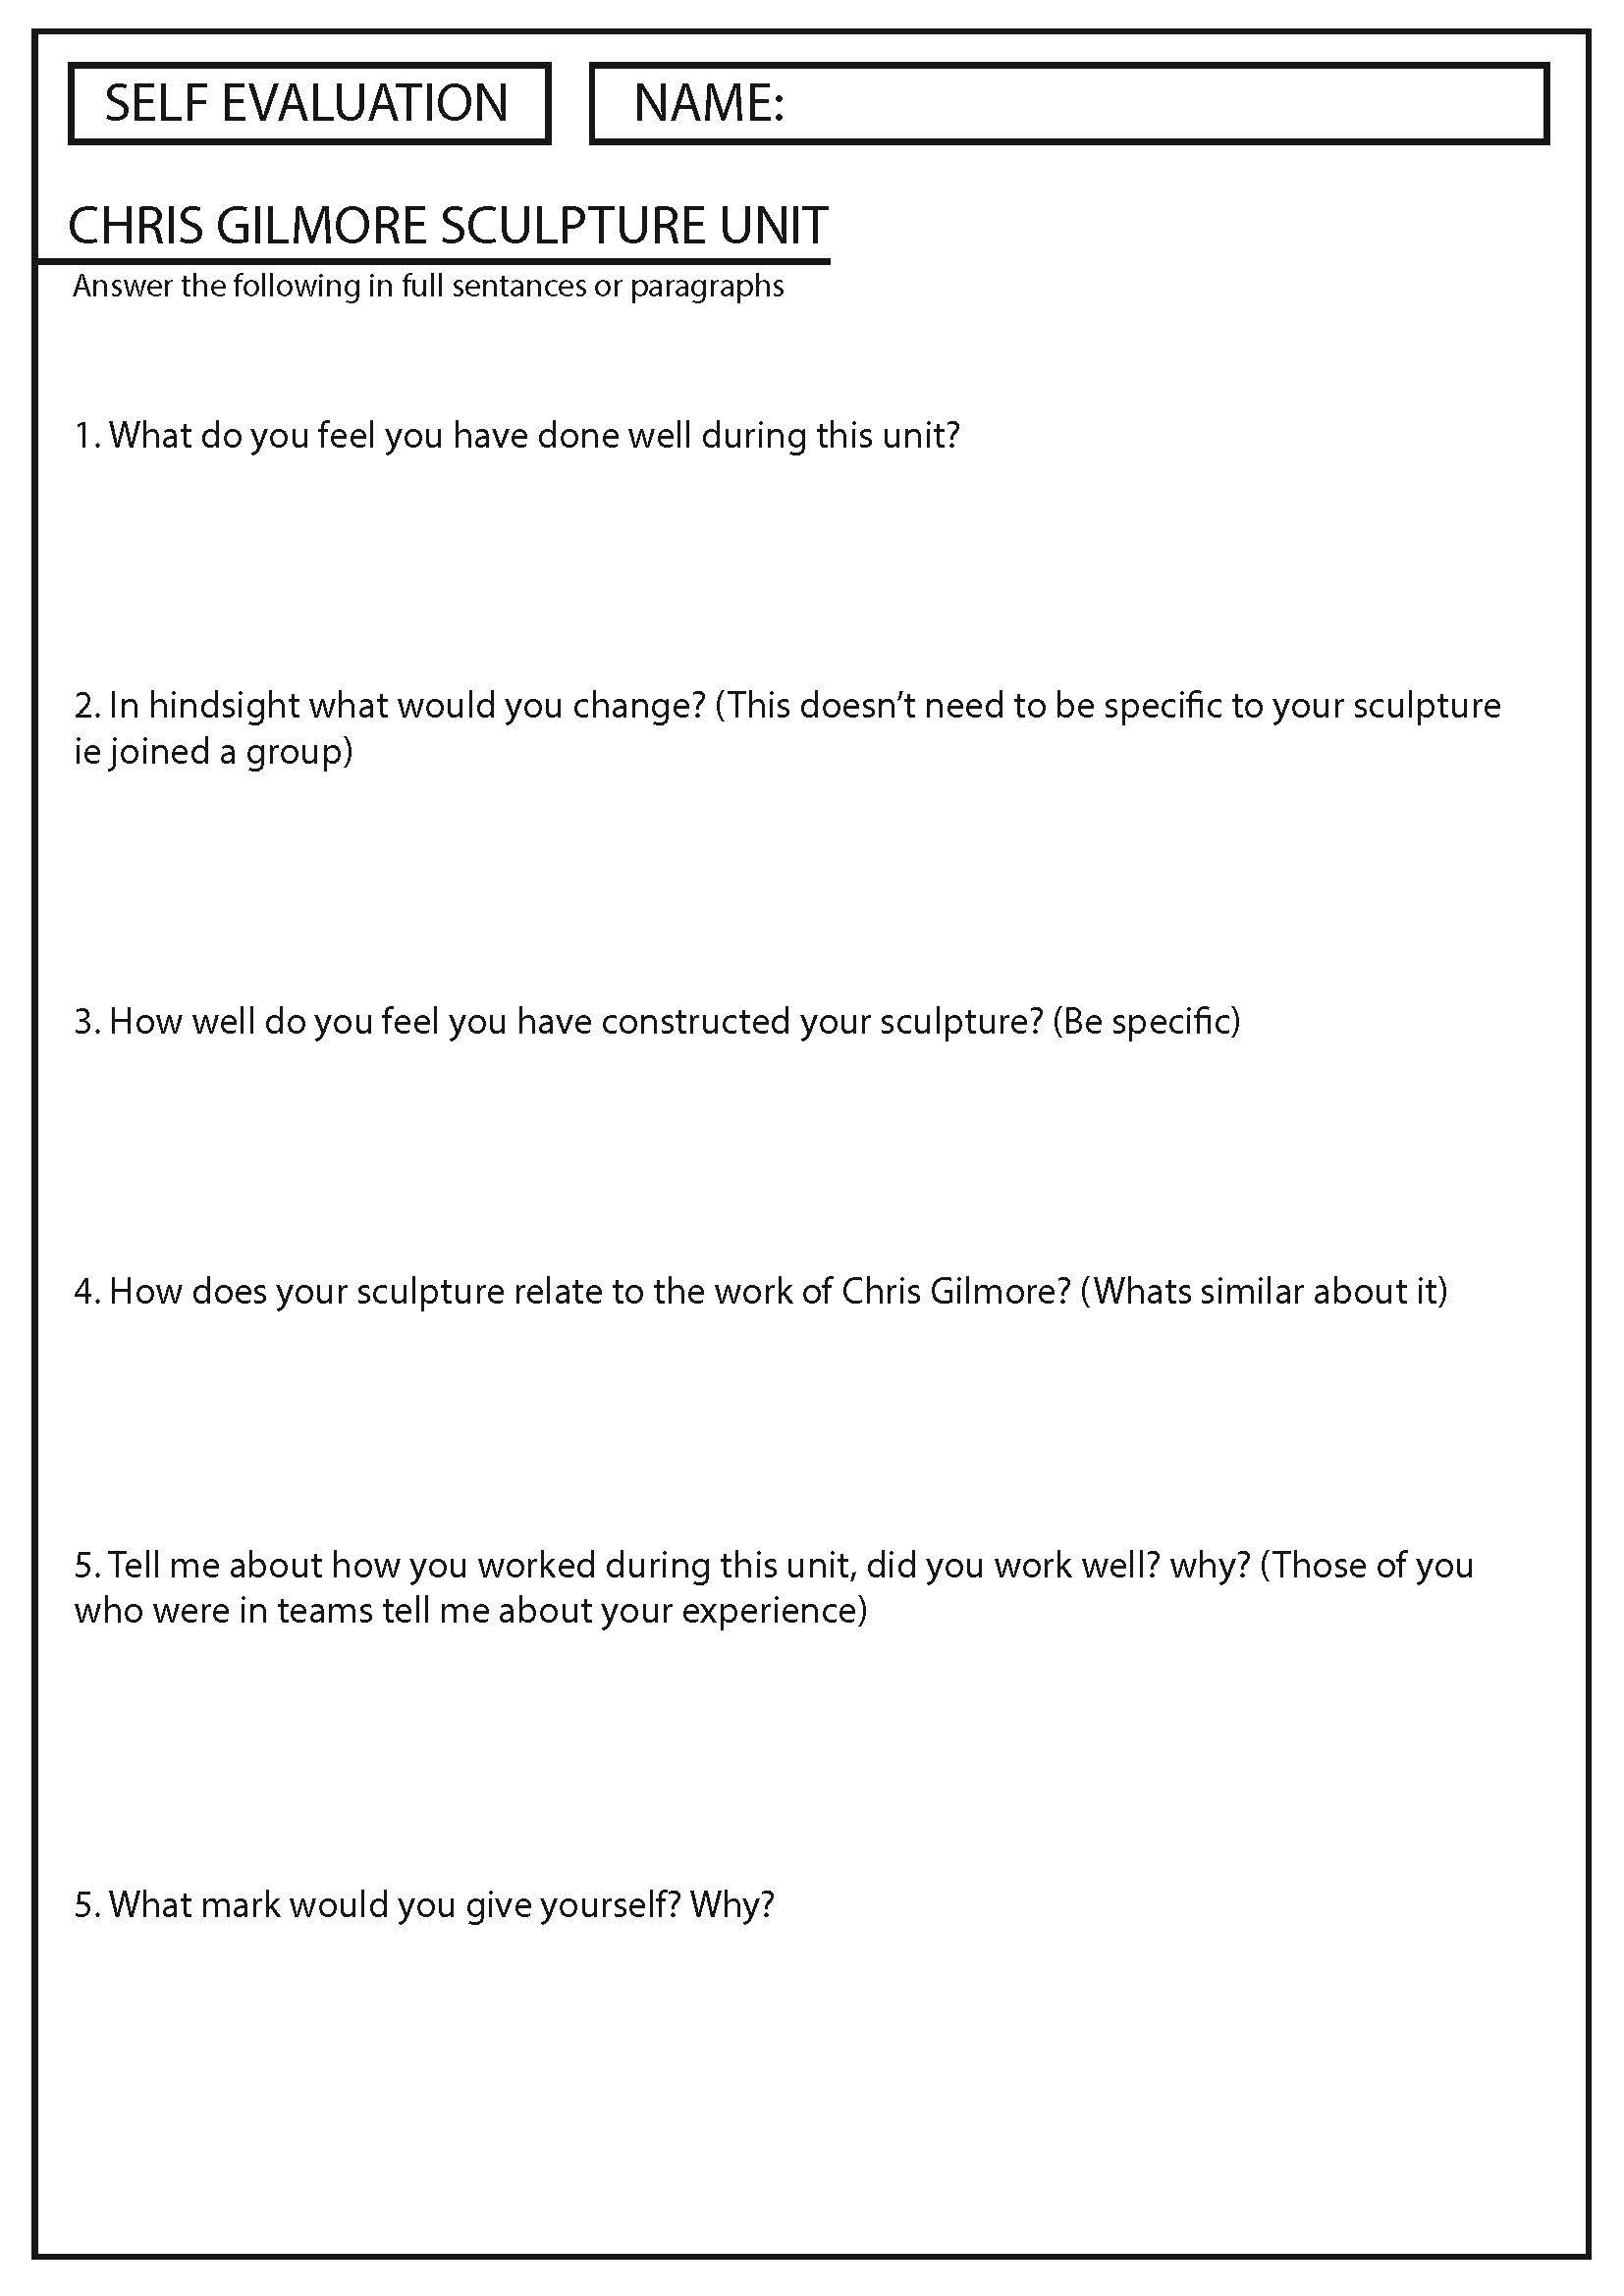 Self Reflection Sheet For A Chris Gilmore Yr10 Unit